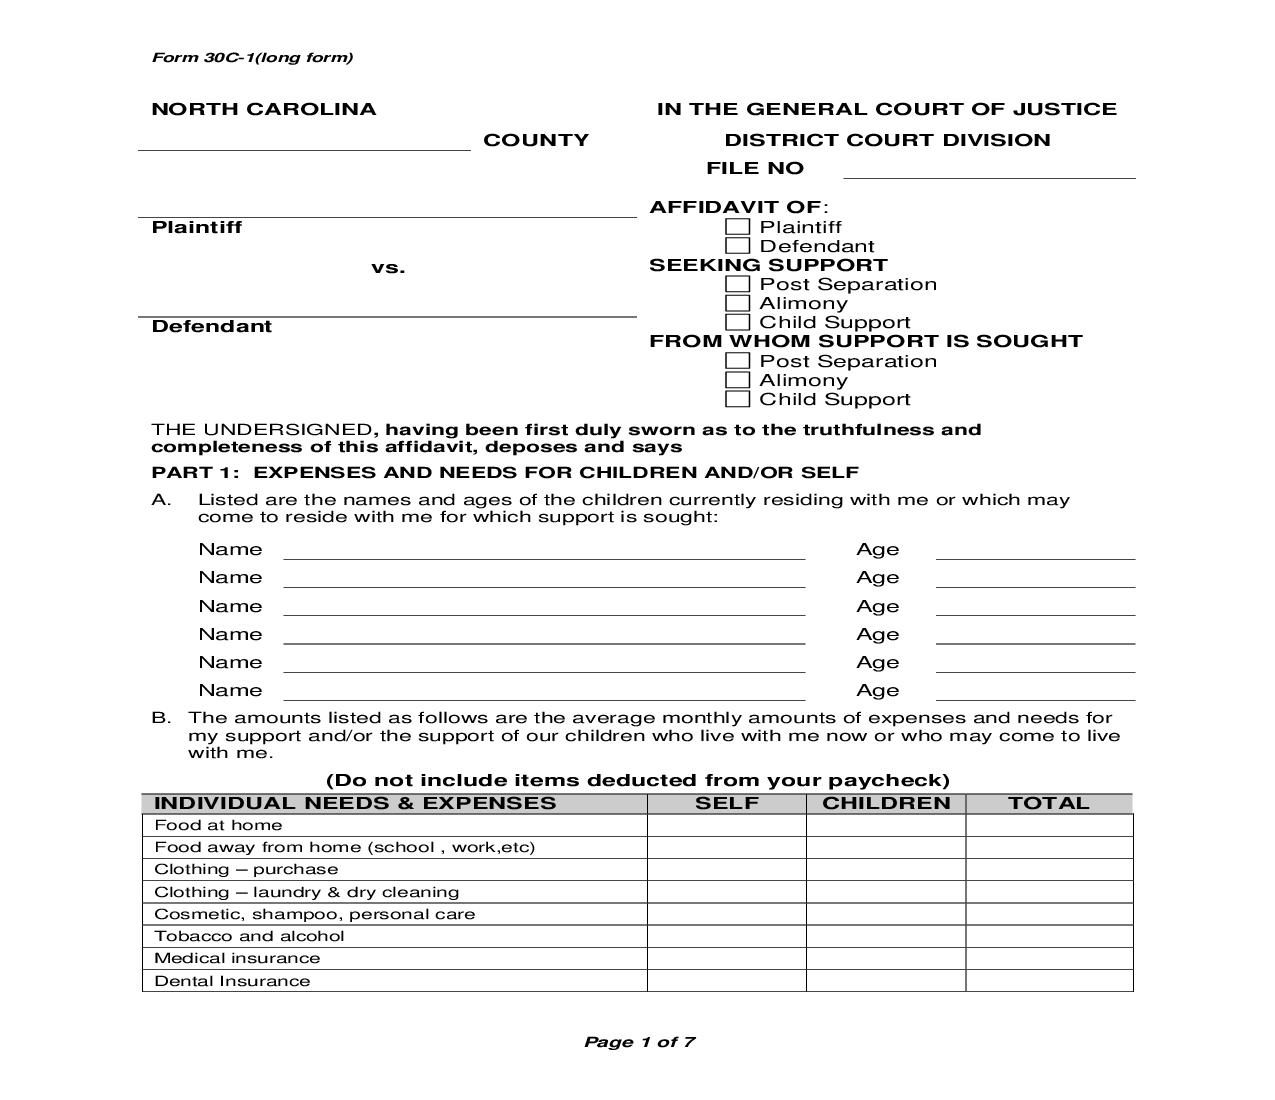 Affidavit Seeking Support Long Form {8} | Pdf Fpdf Doc Docx | North Carolina